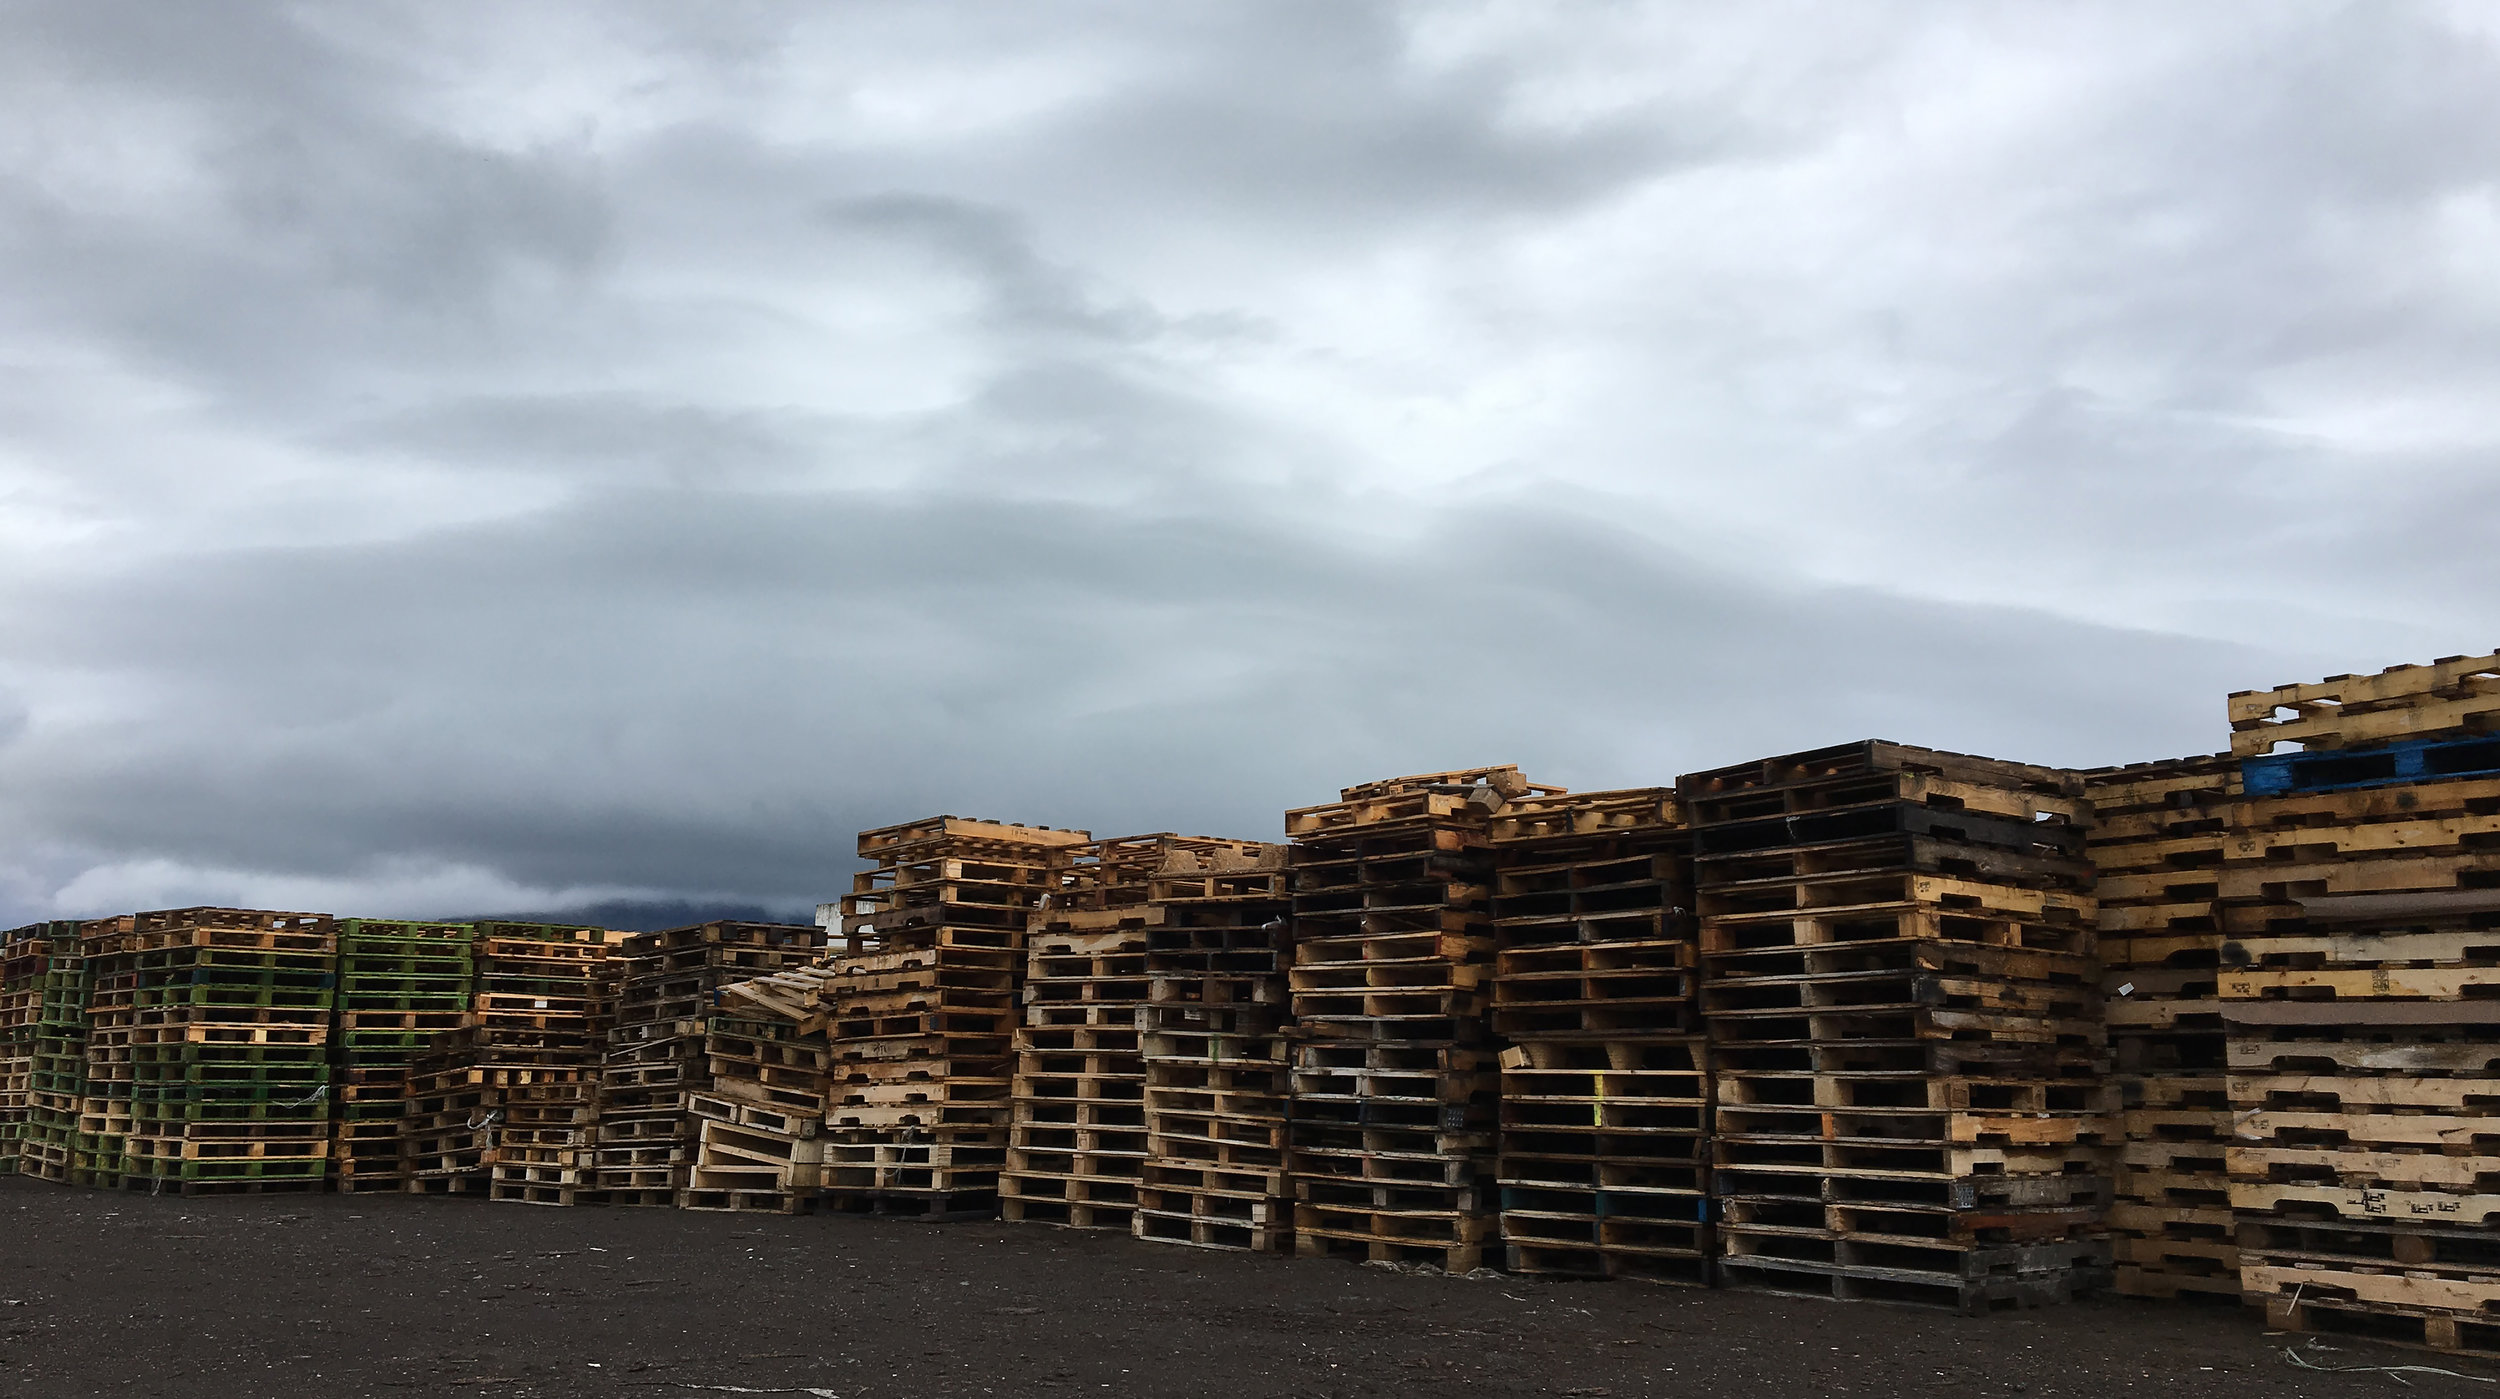 Pallettufjall / Pallet Mountain, 2014